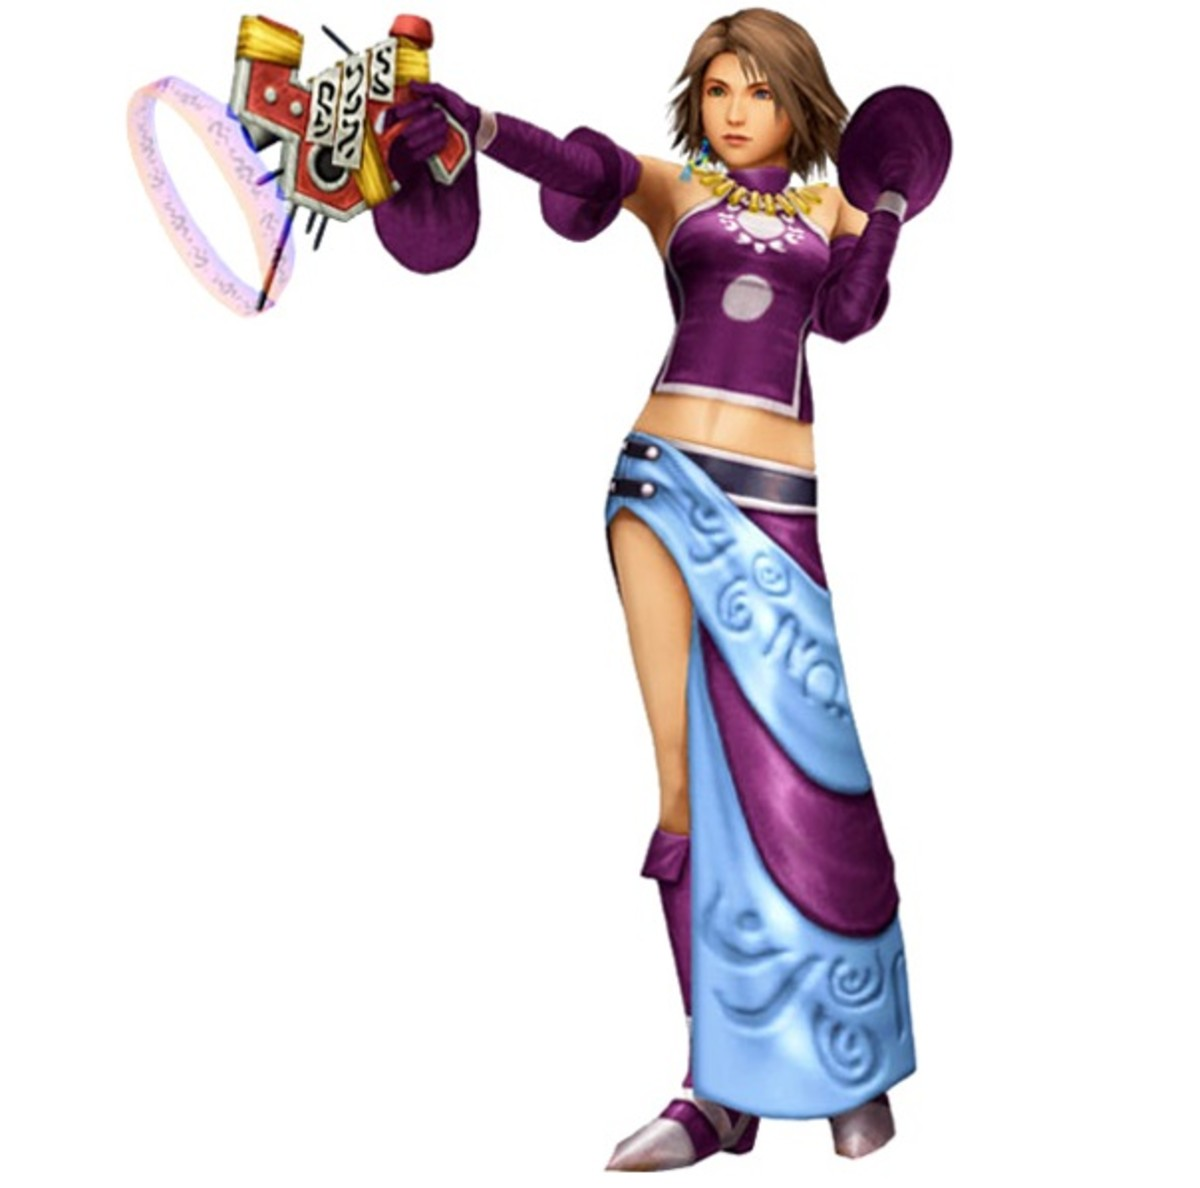 Yuna as a Gun Mage